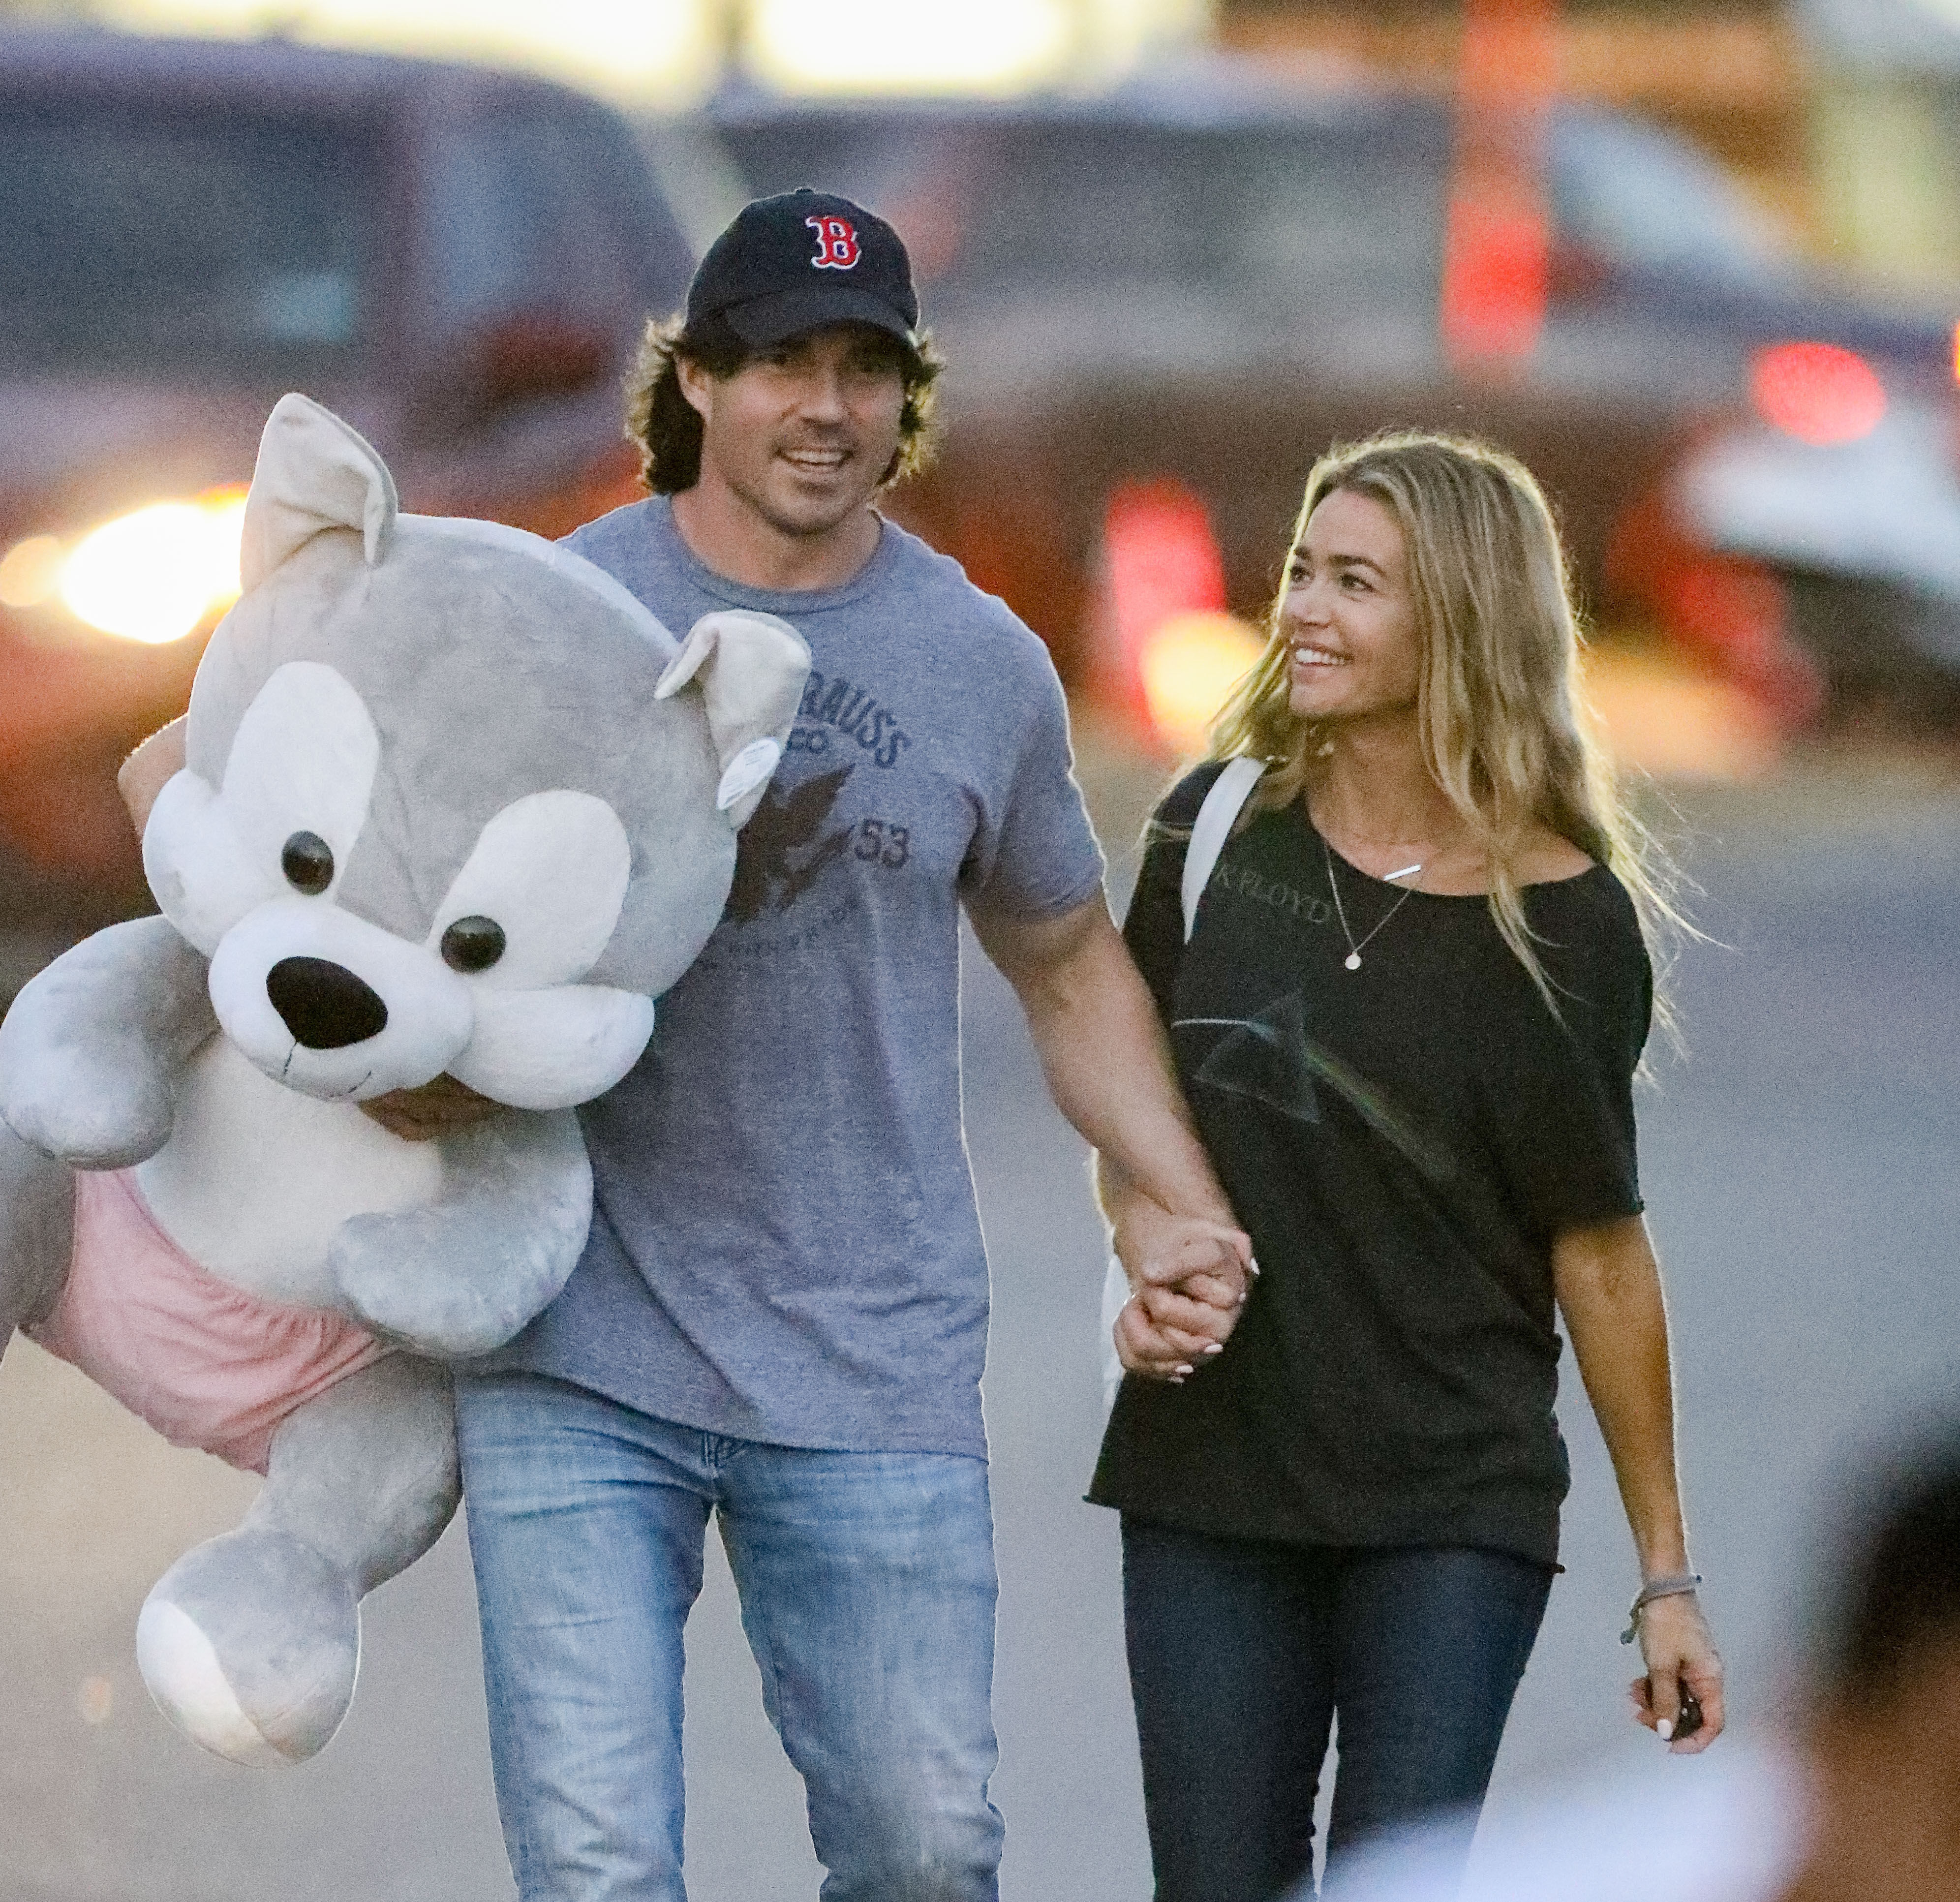 Denise Richards was all smiles with her new boyfriend at the 36th Annual Malibu Chili Cook Off in Los Angeles, Calif., on Sept. 1, 2017.